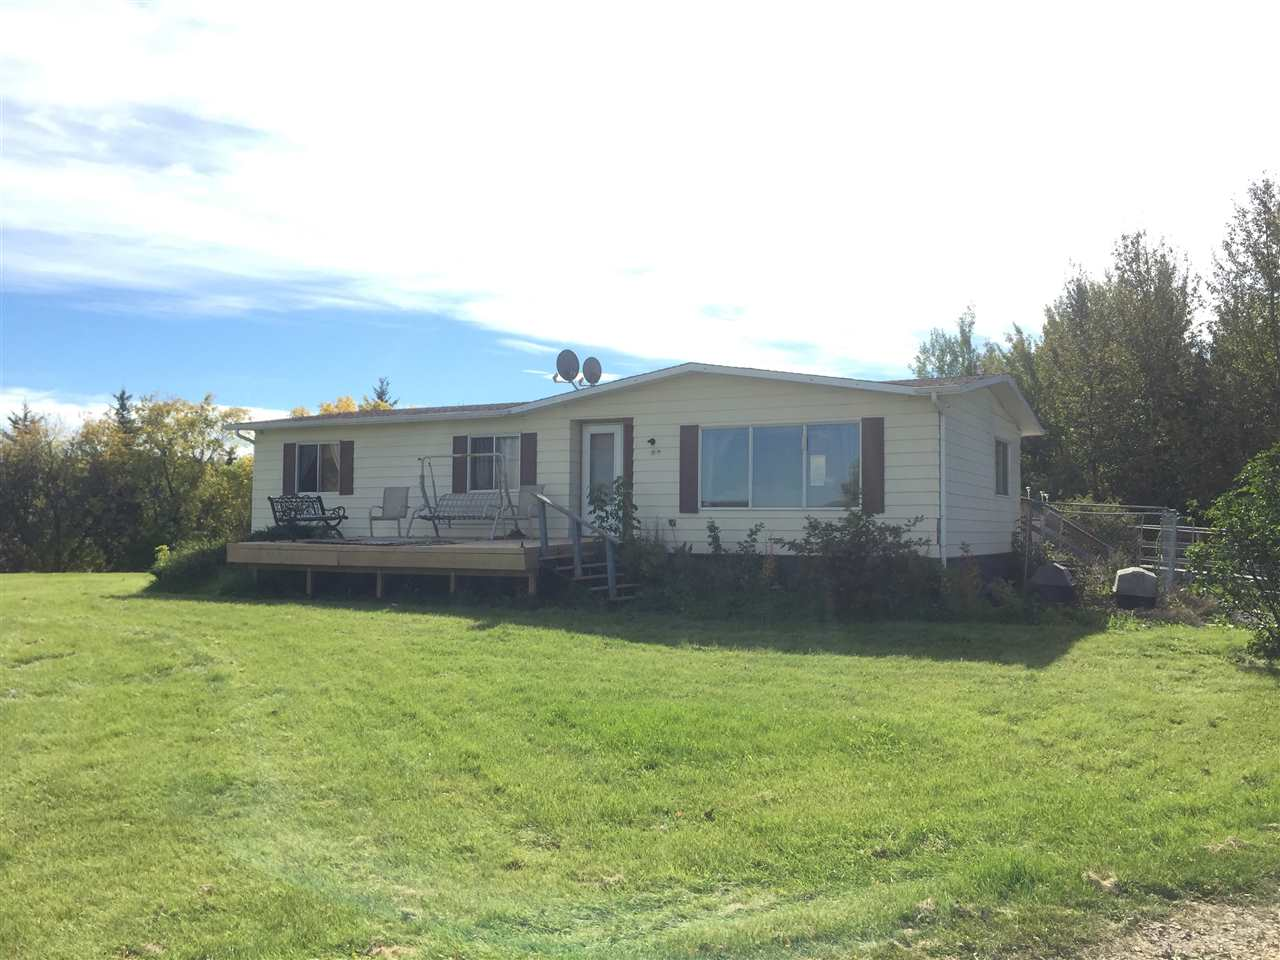 Main Photo: 66156 RGE RD 20: Rural Lesser Slave River M.D. House for sale : MLS®# E4107511